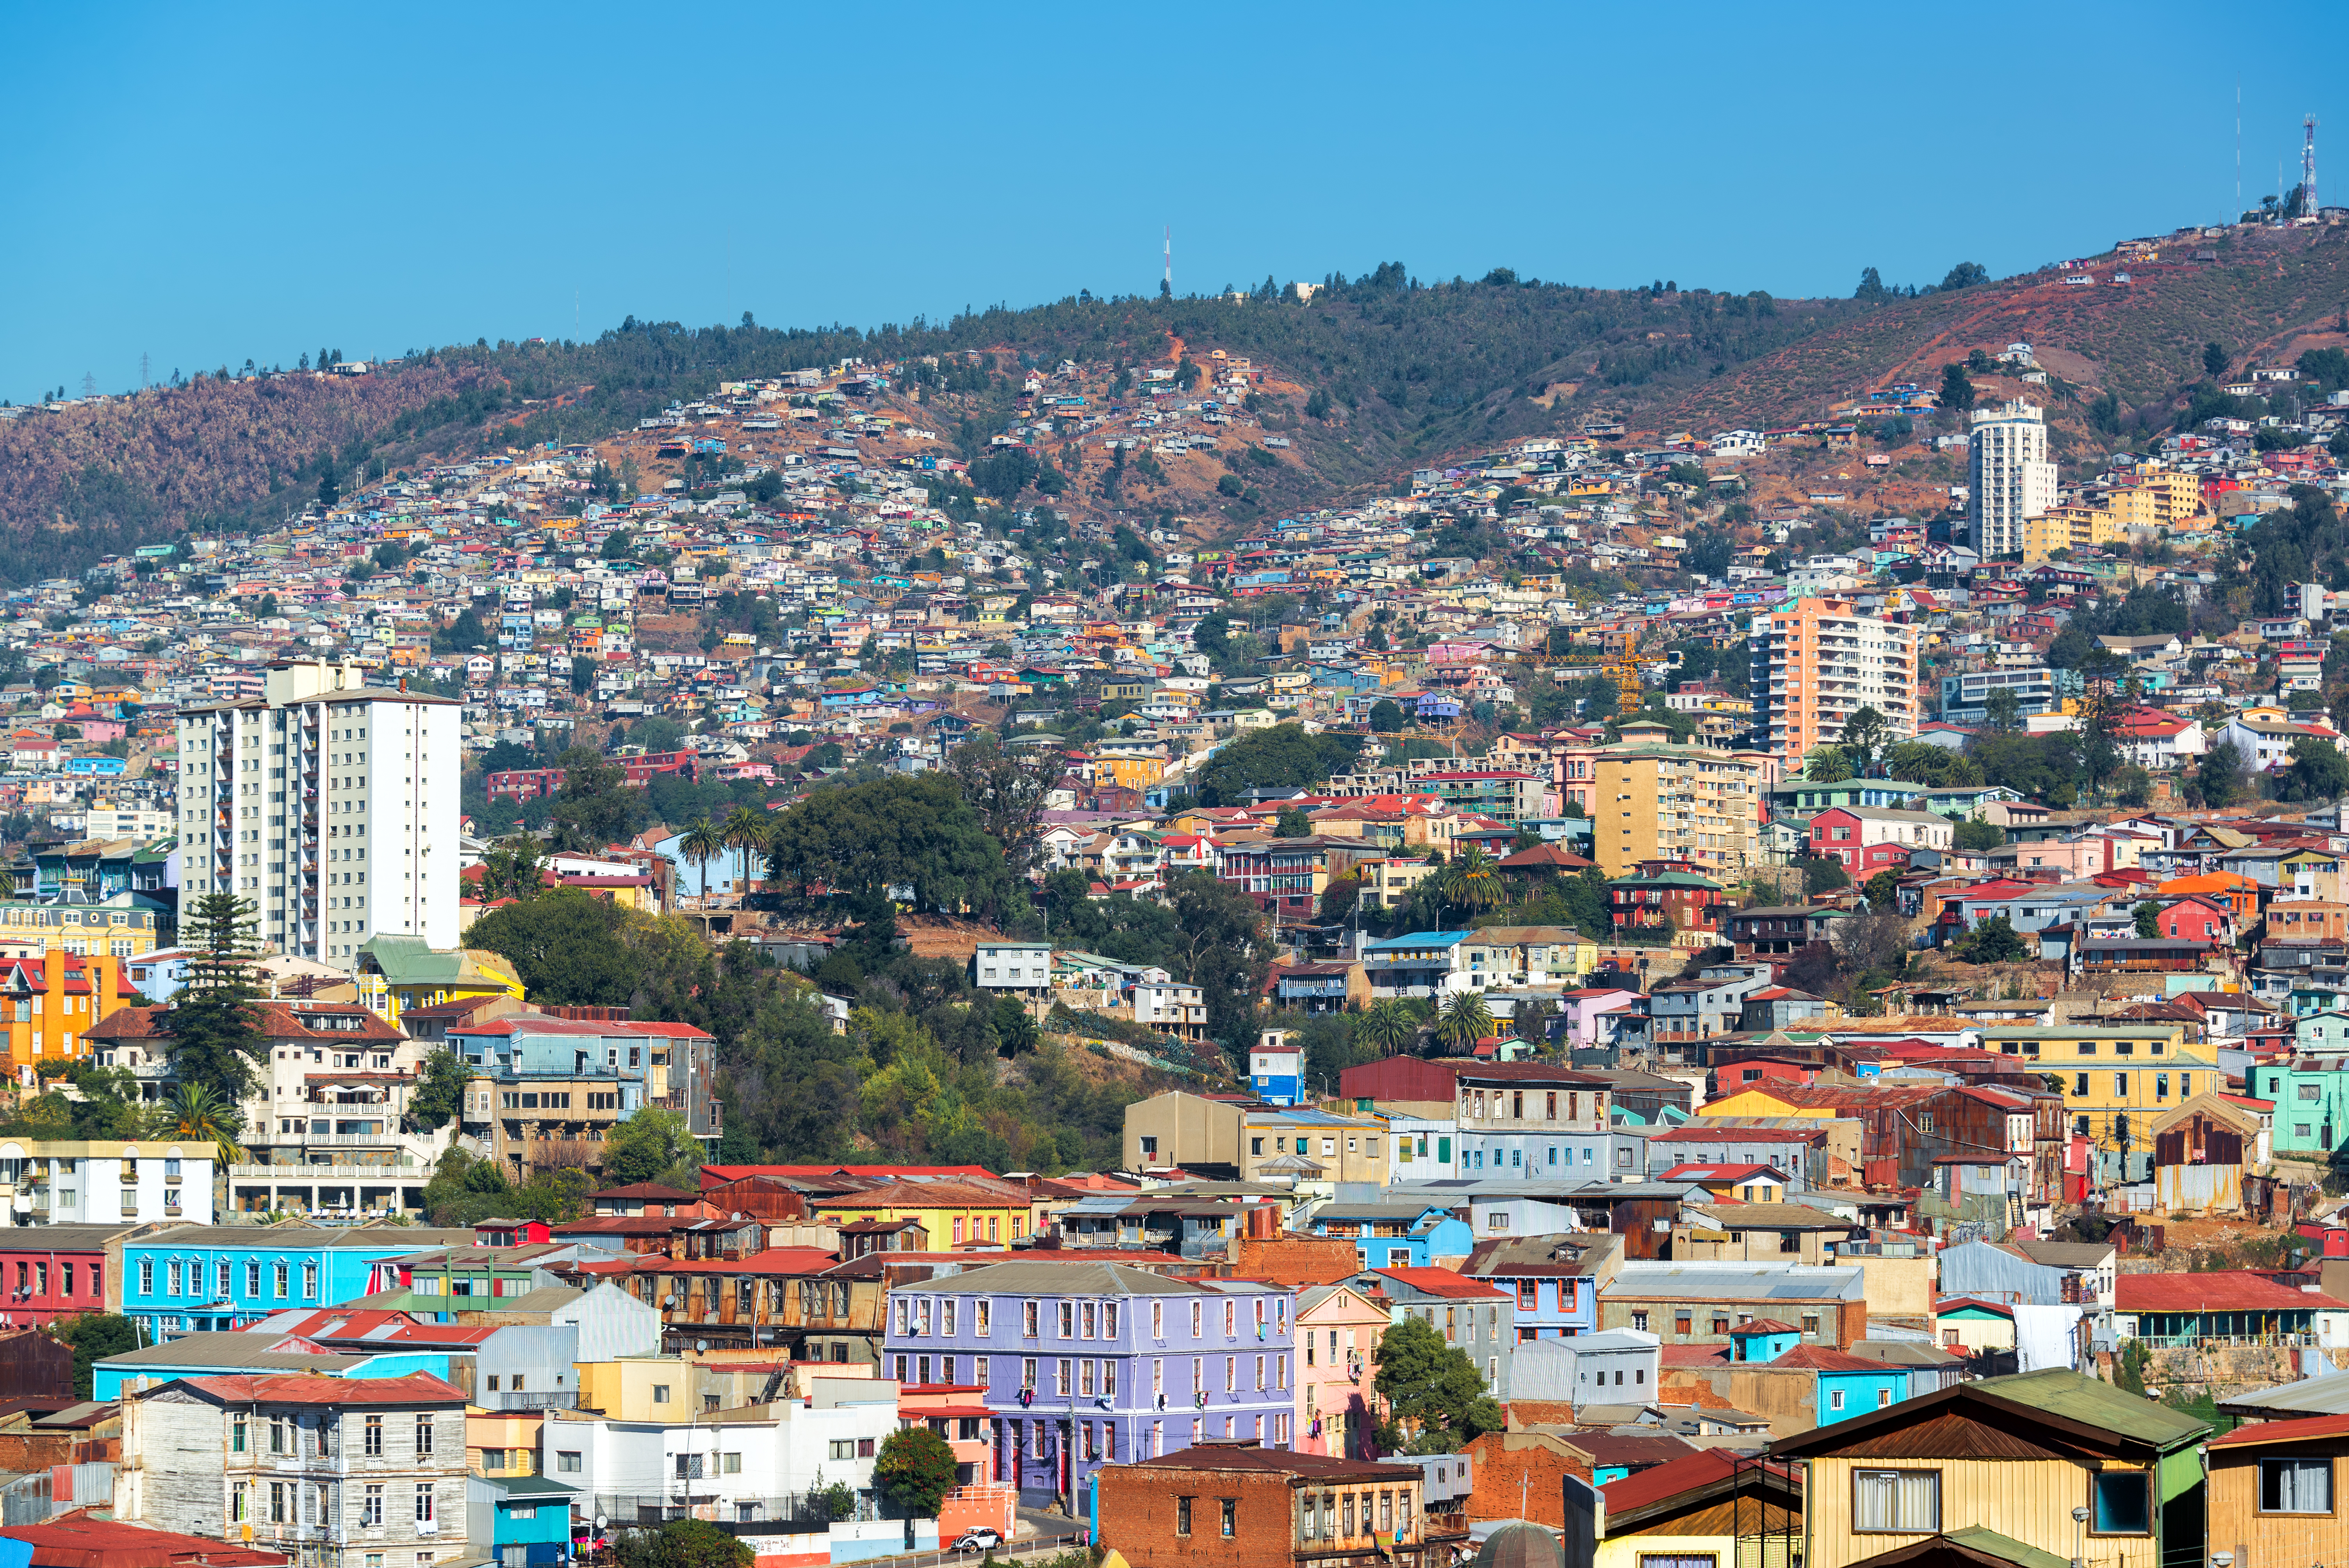 Valparaiso Hills - Read why we think Valparaiso is an unmissable place to see in Chile